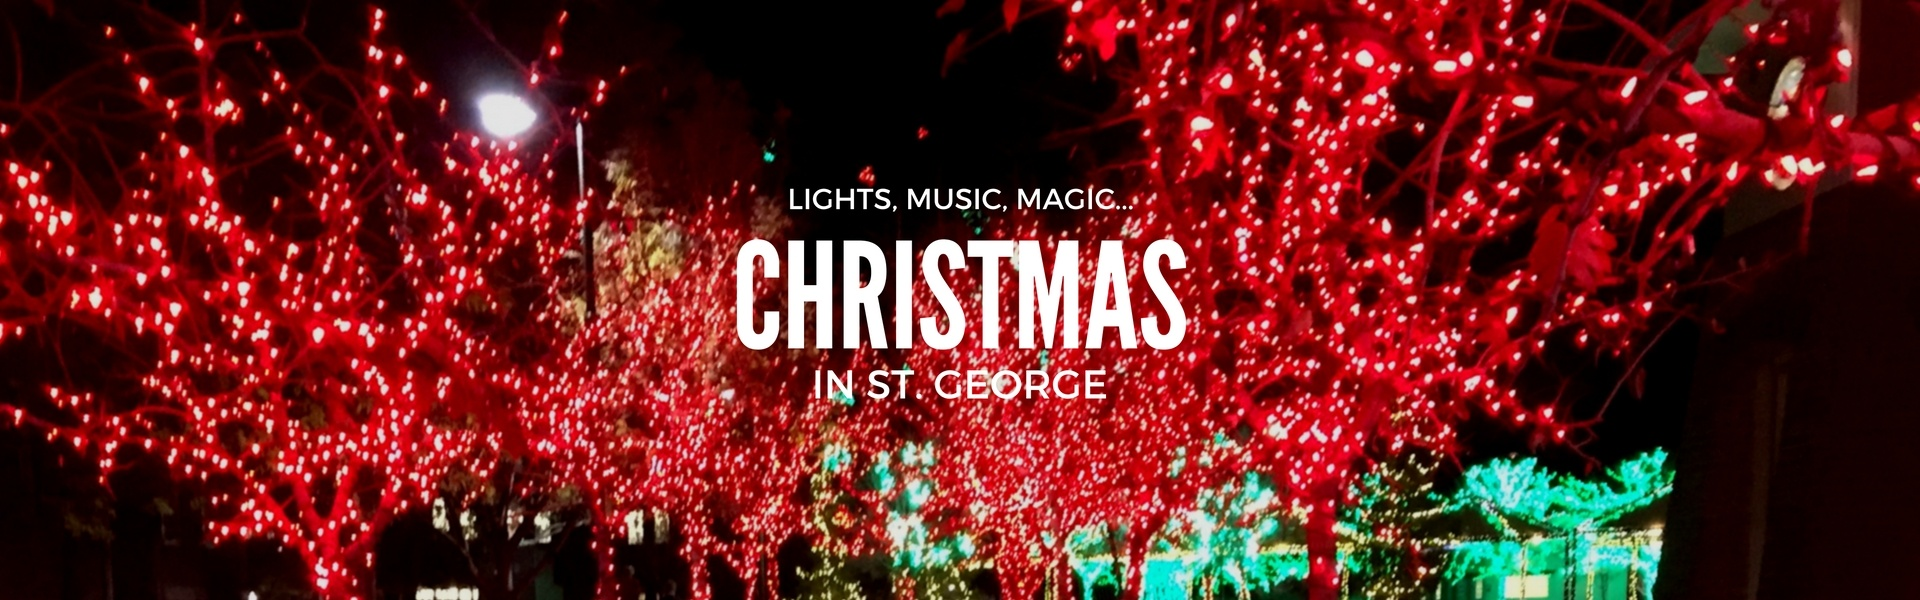 Lights, Music Magic... It's Christmas in St. George